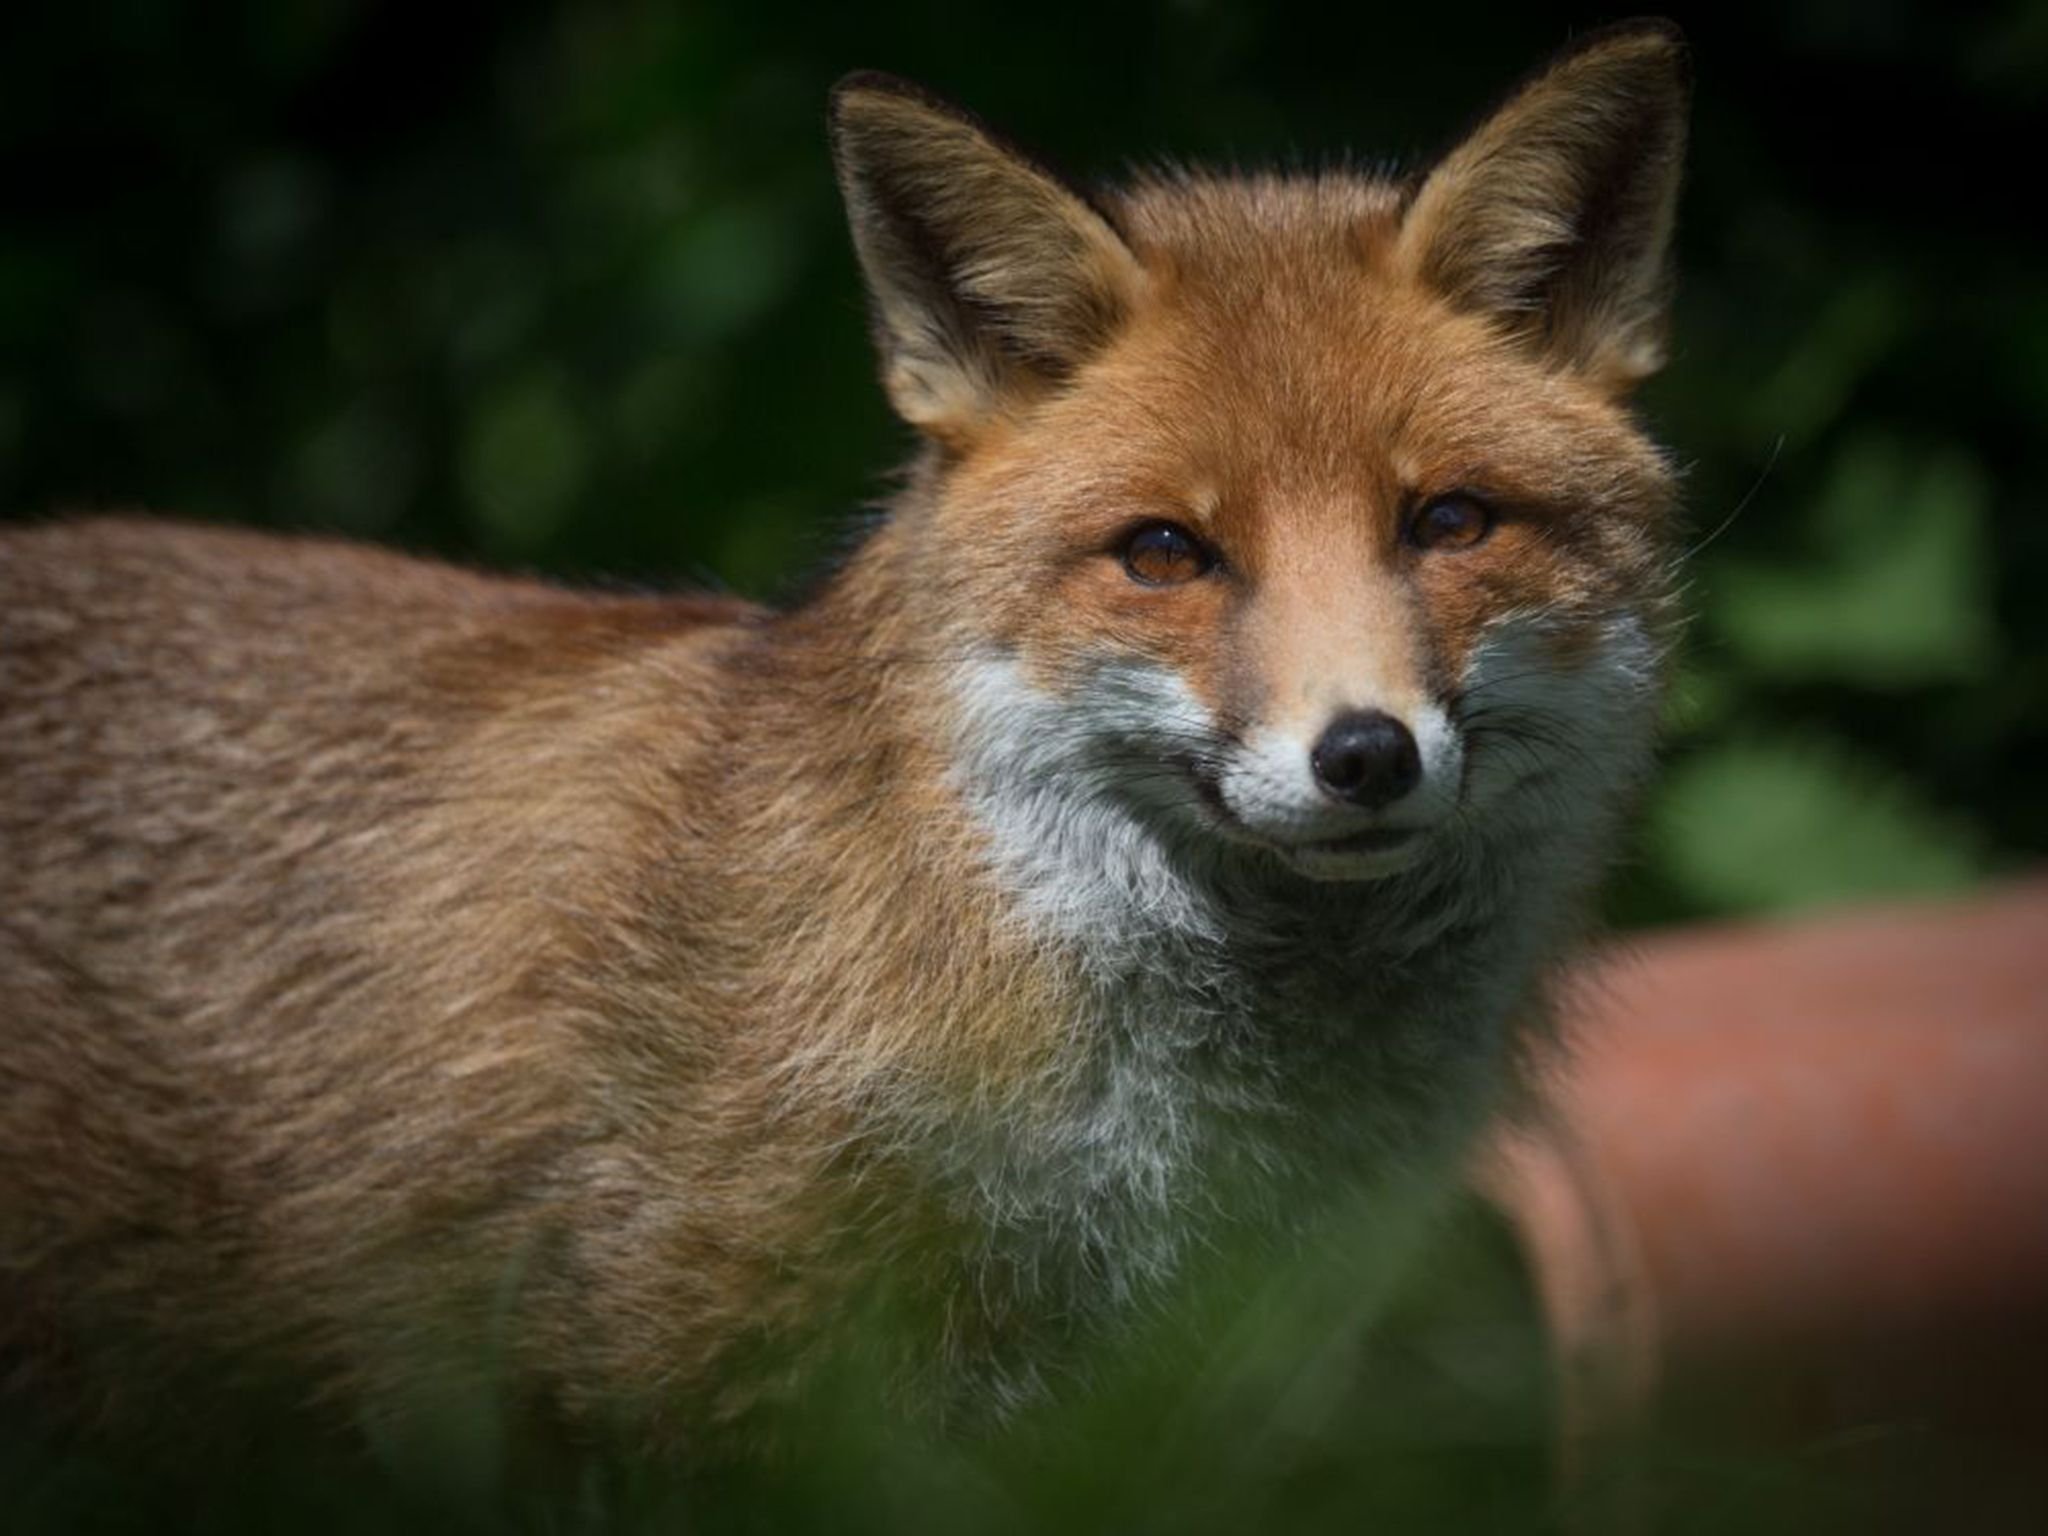 Uk S New Environment Secretary Andrea Leadsom Backs Fox Hunting Selling Off Forests Amp Opposes Climate Change Measures Followme Fox Hunting Fox Cite Animals